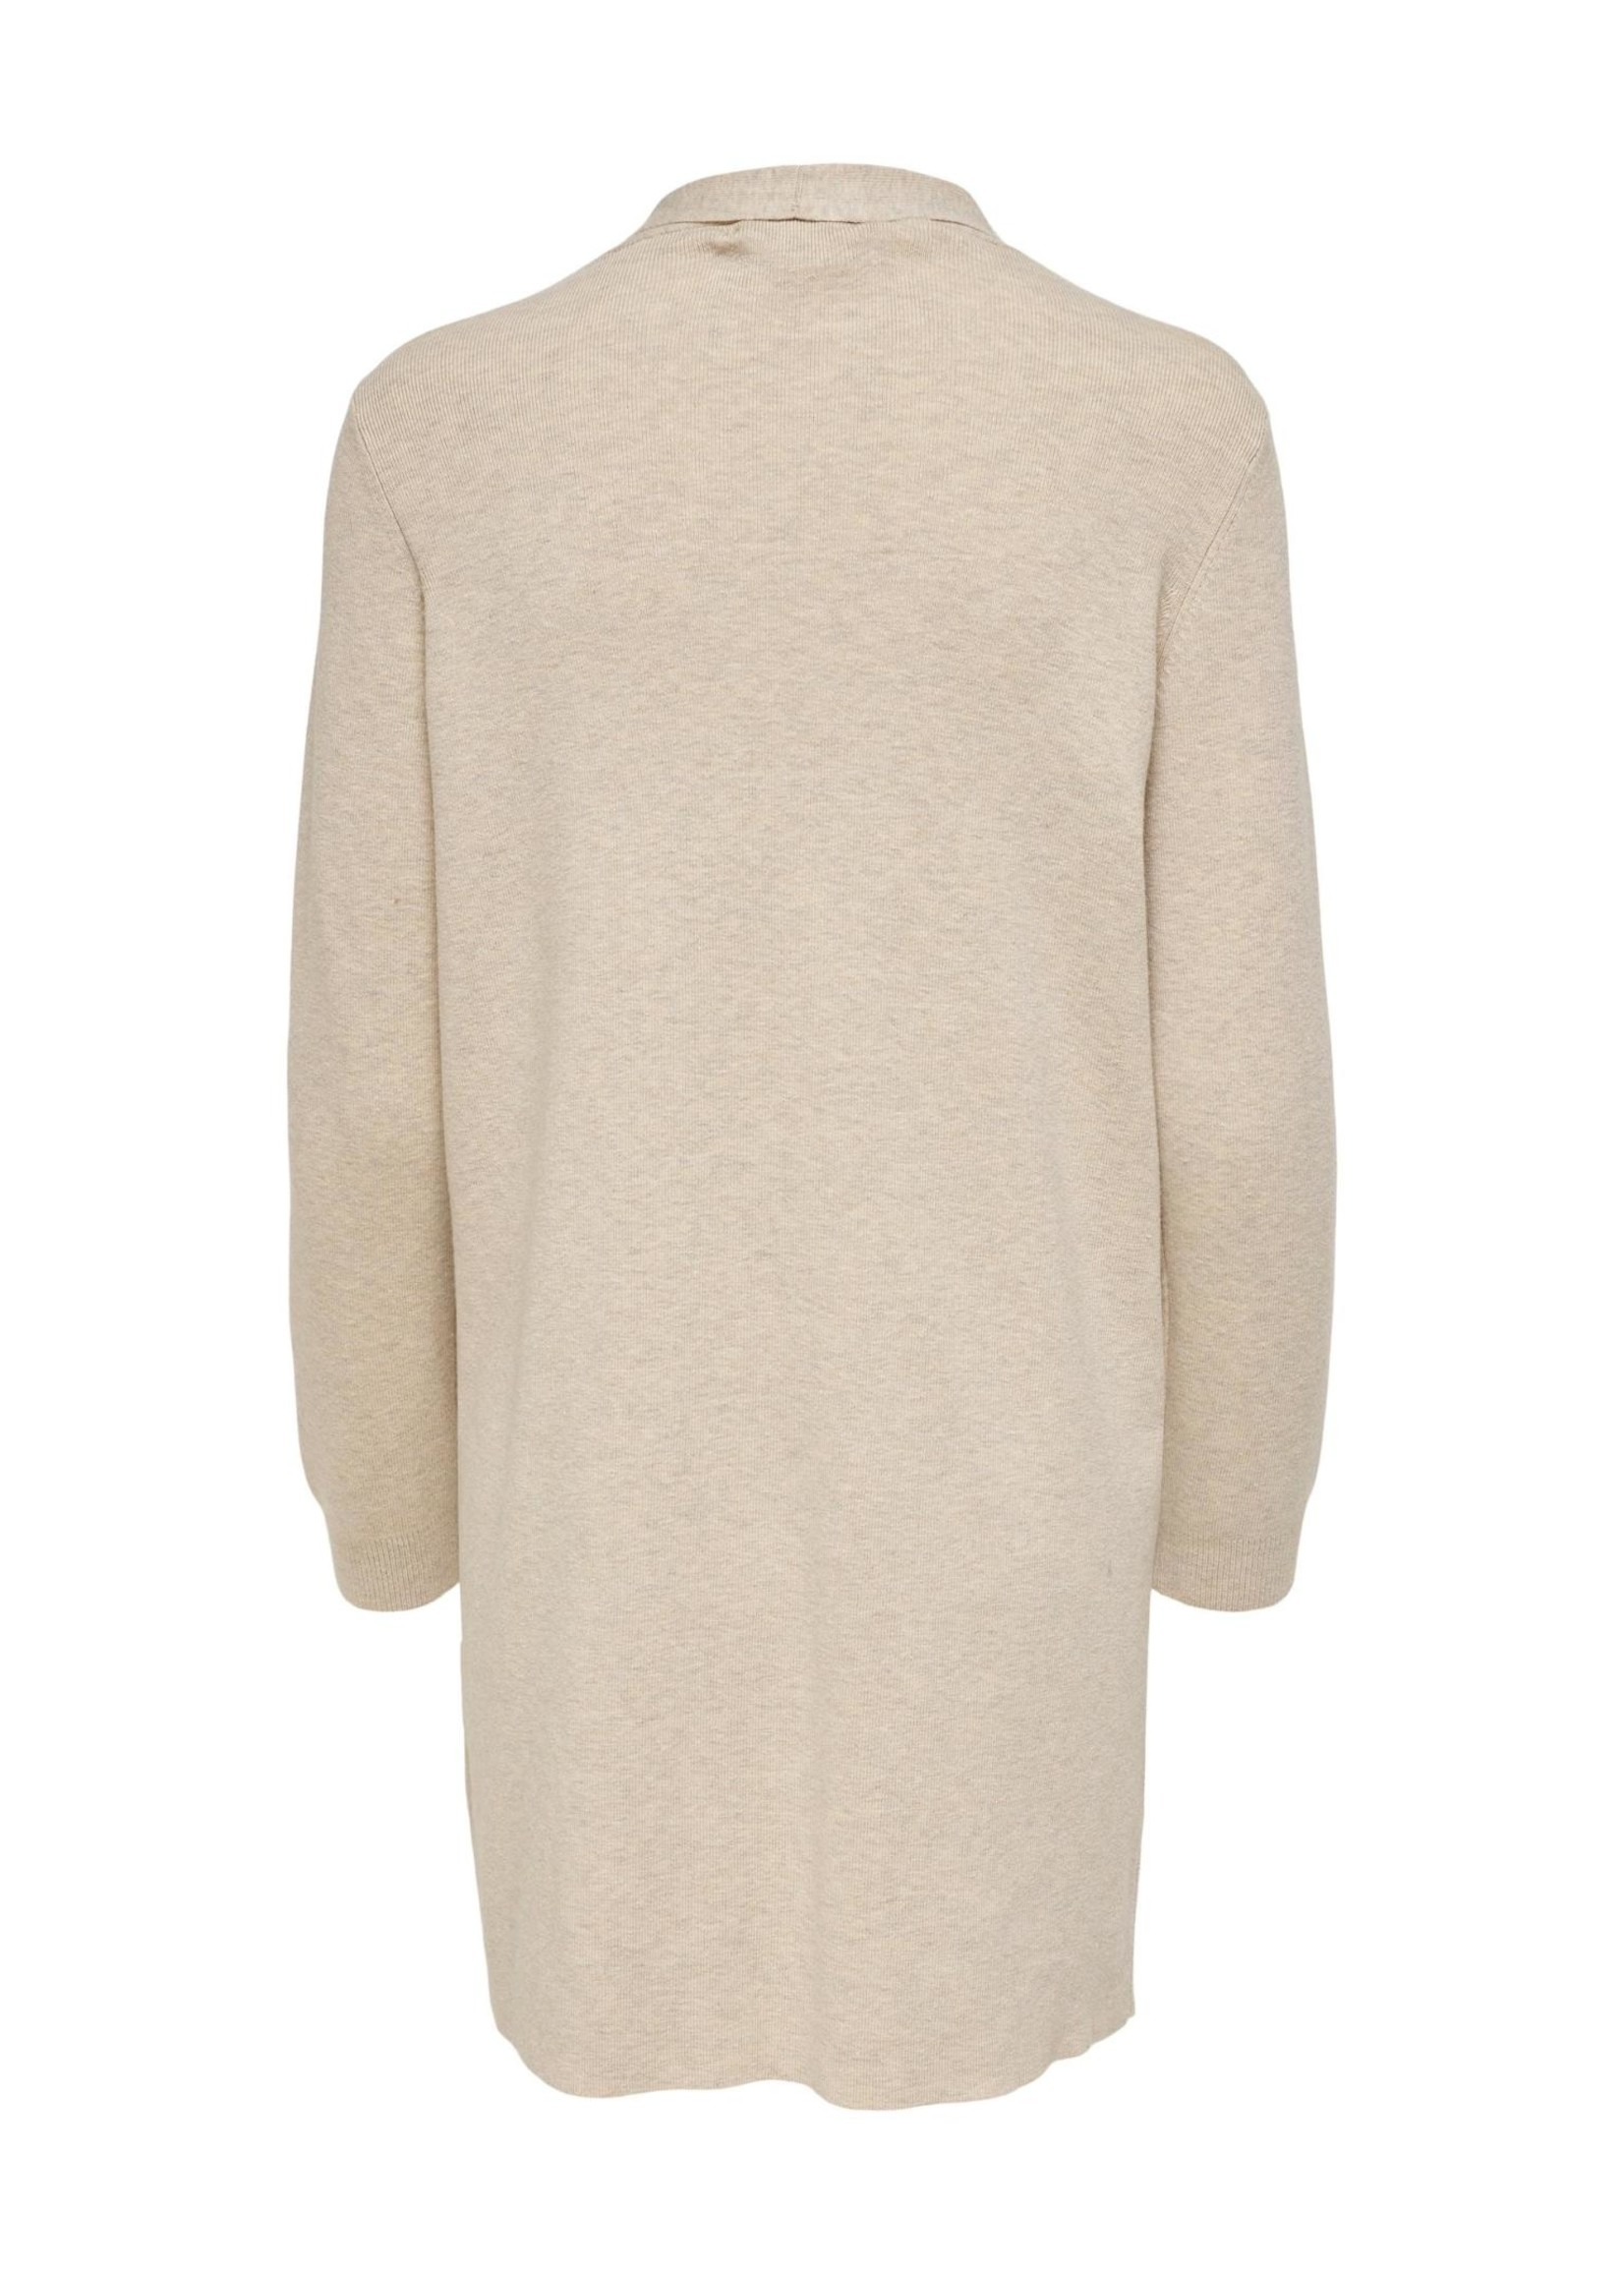 ONLY AUGUSTA L/S OPEN CARDIGAN,pumice stone